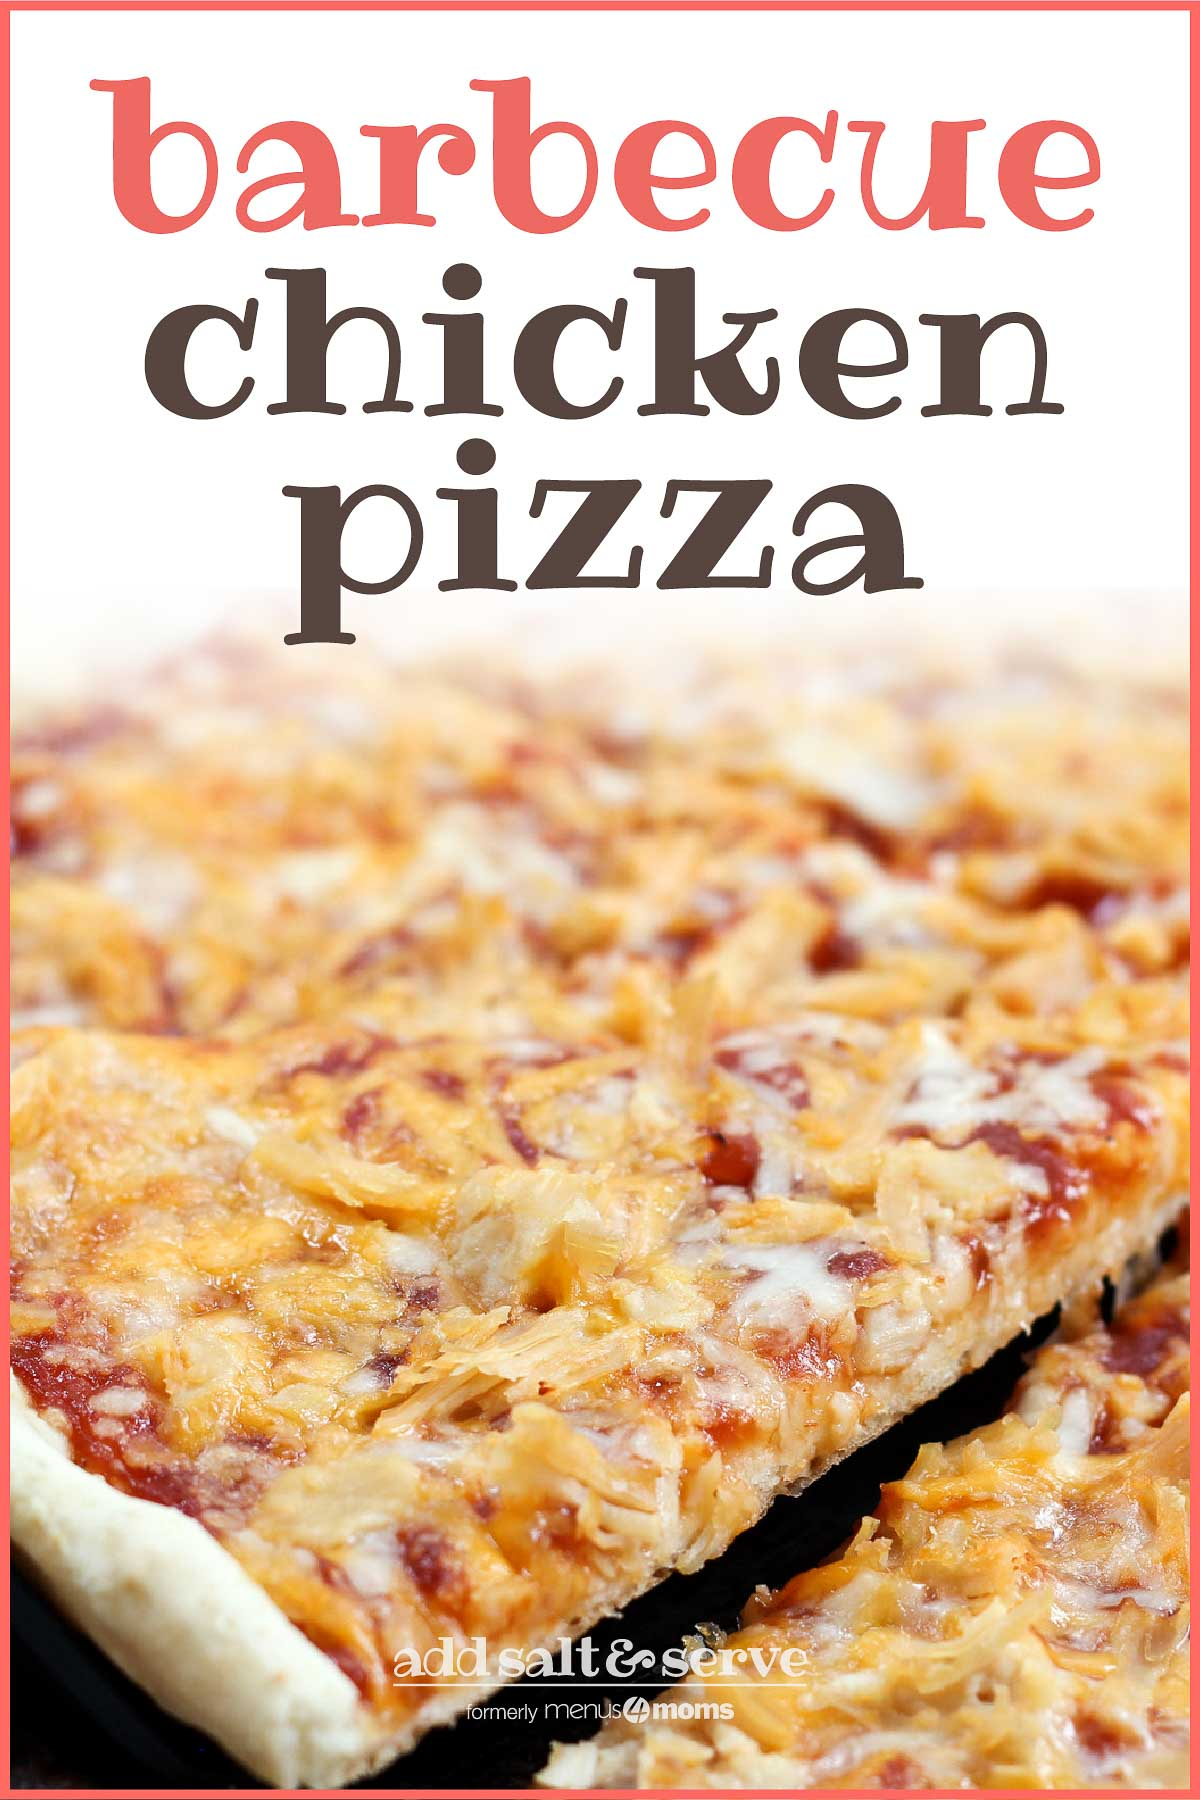 Slice of pizza topped with chicken, cheddar cheese, and barbecue sauce being lifted from the pie with text Barbecue Chicken Pizza Add Salt & Serve formerly Menus4Moms